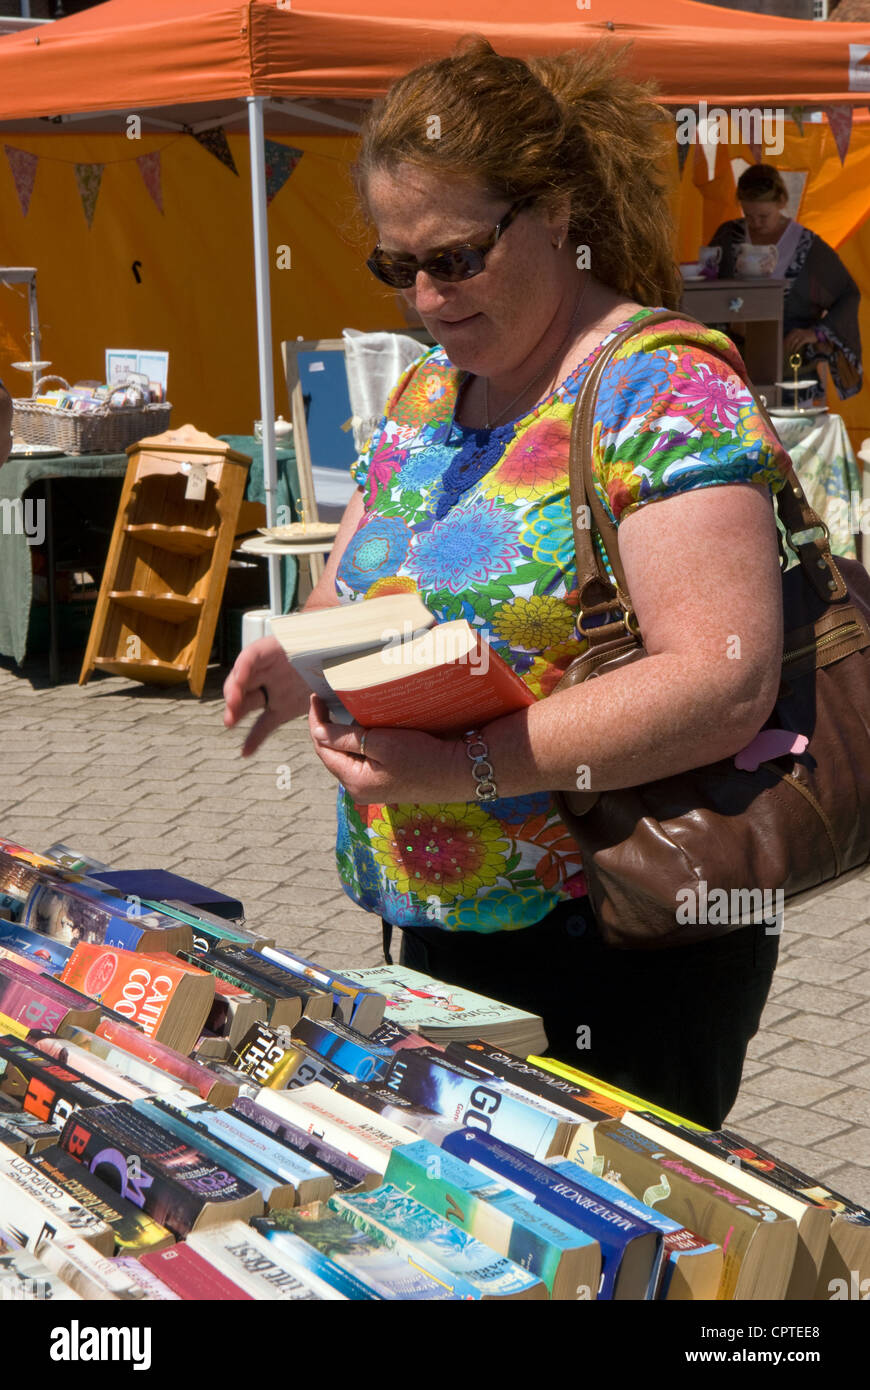 Woman perusing book stall at the weekly outdoor market, Petersfield, Hampshire, UK. - Stock Image